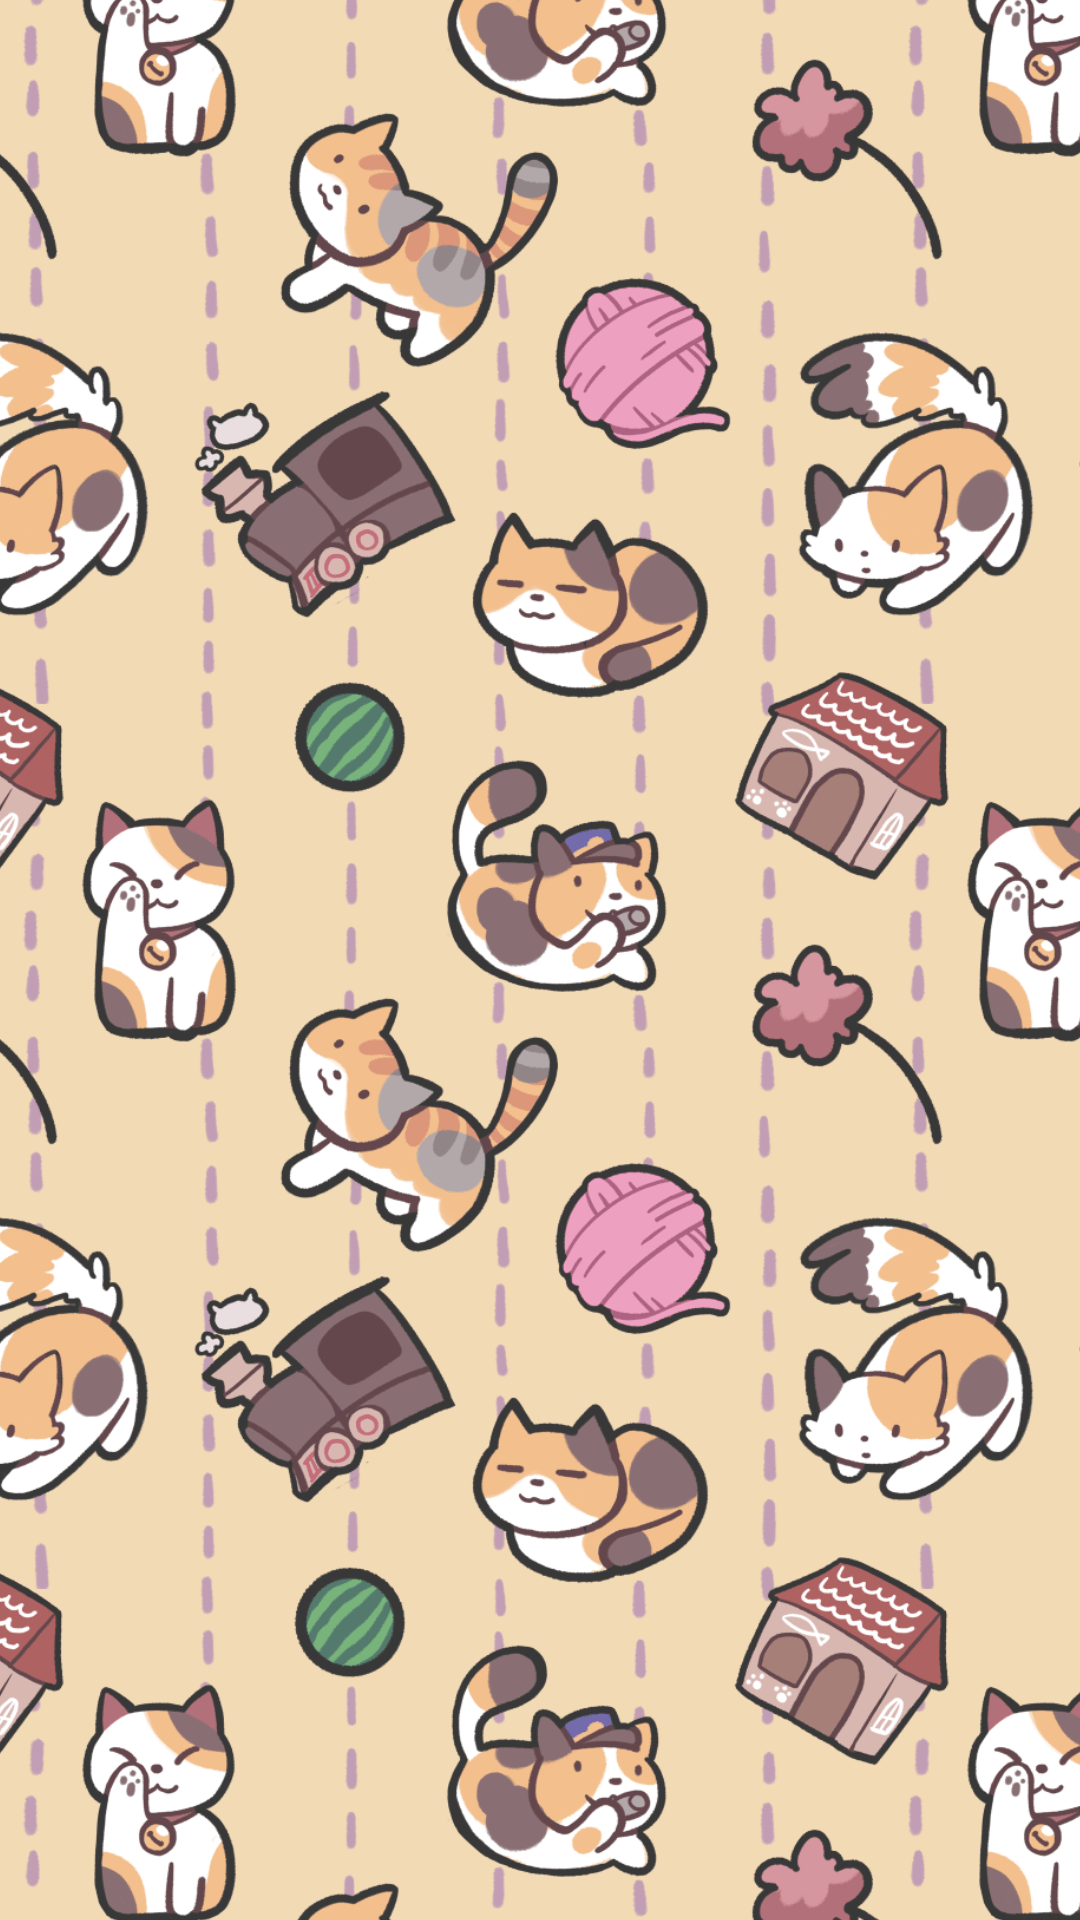 neko atsume lock screen/wallpaper — Weasyl